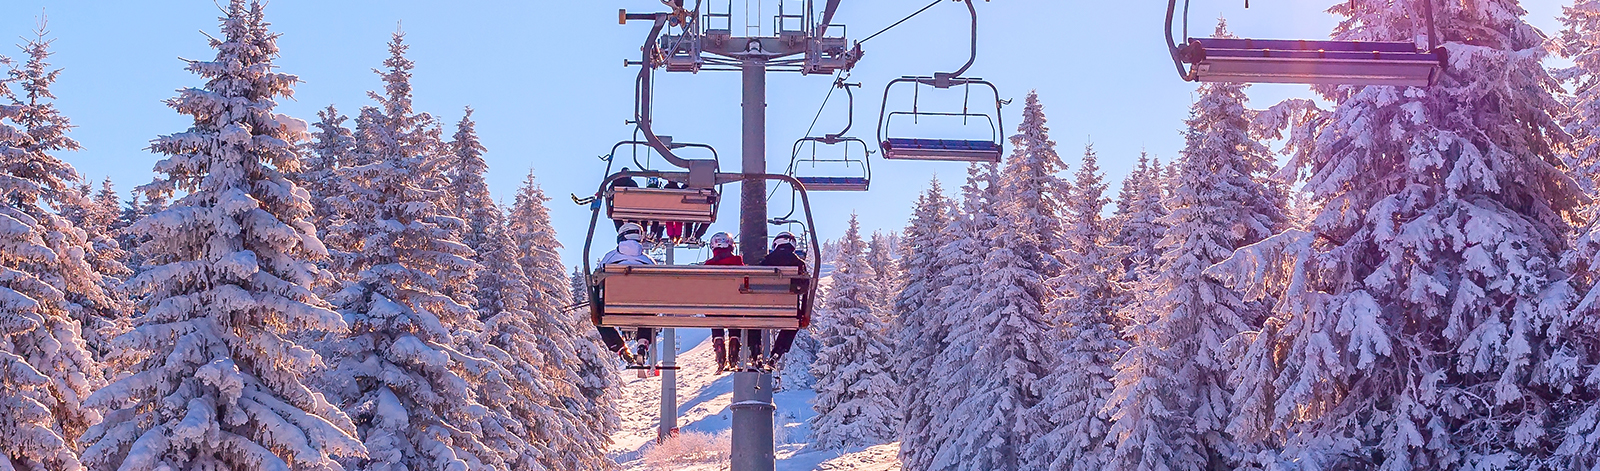 Skiers on a chairlift surrounded by white snow pine trees